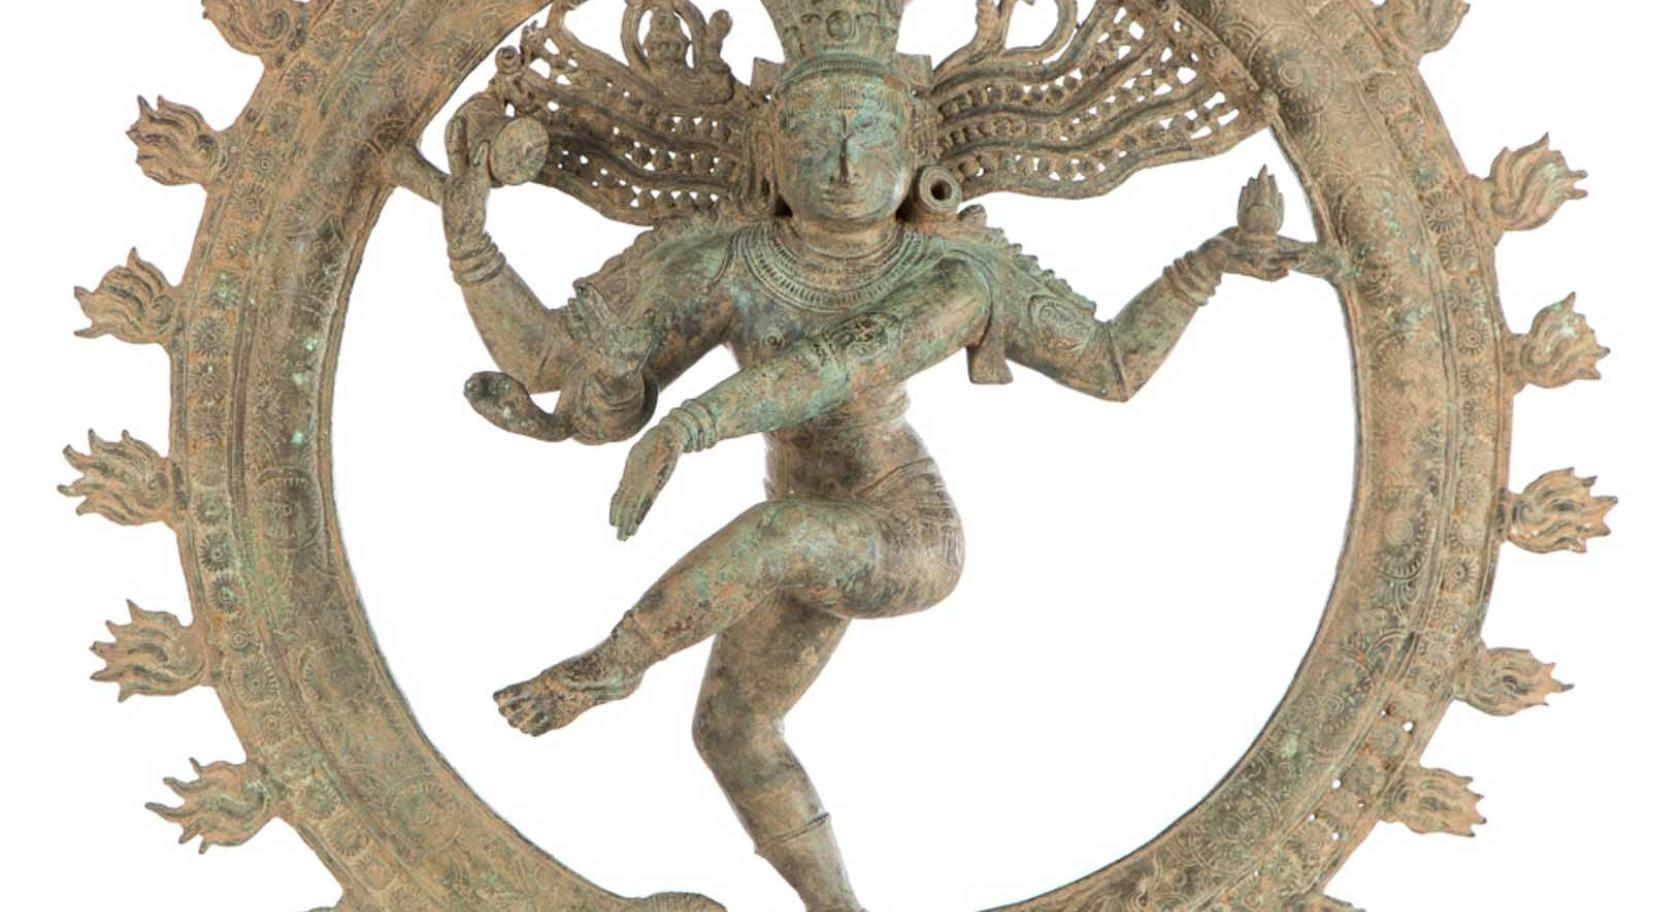 Shiva as Lord of Dance (Nataraja), Southern India, Chola dynasty, ca. 12th-13th century, bronze, gift of the Christensen Fund to commemorate founding Director E. Frank Sanguinetti's 84th birthday, UMFA2001.11.1.